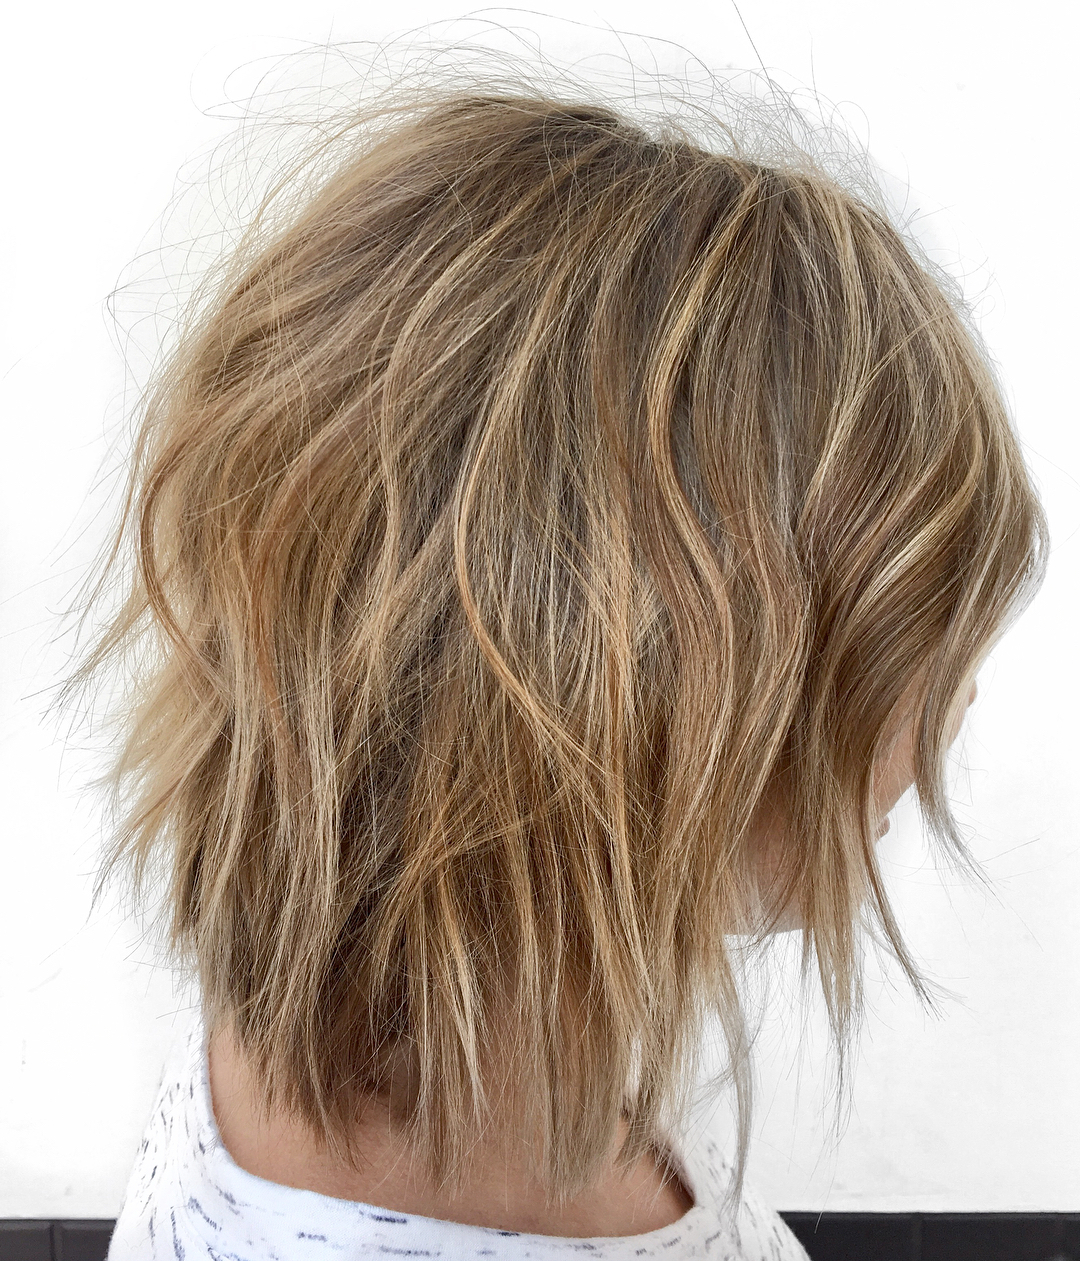 How To Pull Off Medium Length Haircuts And Hairstyles In 2019 Intended For Widely Used Shag Haircuts With Blunt Ends And Angled Layers (View 9 of 20)